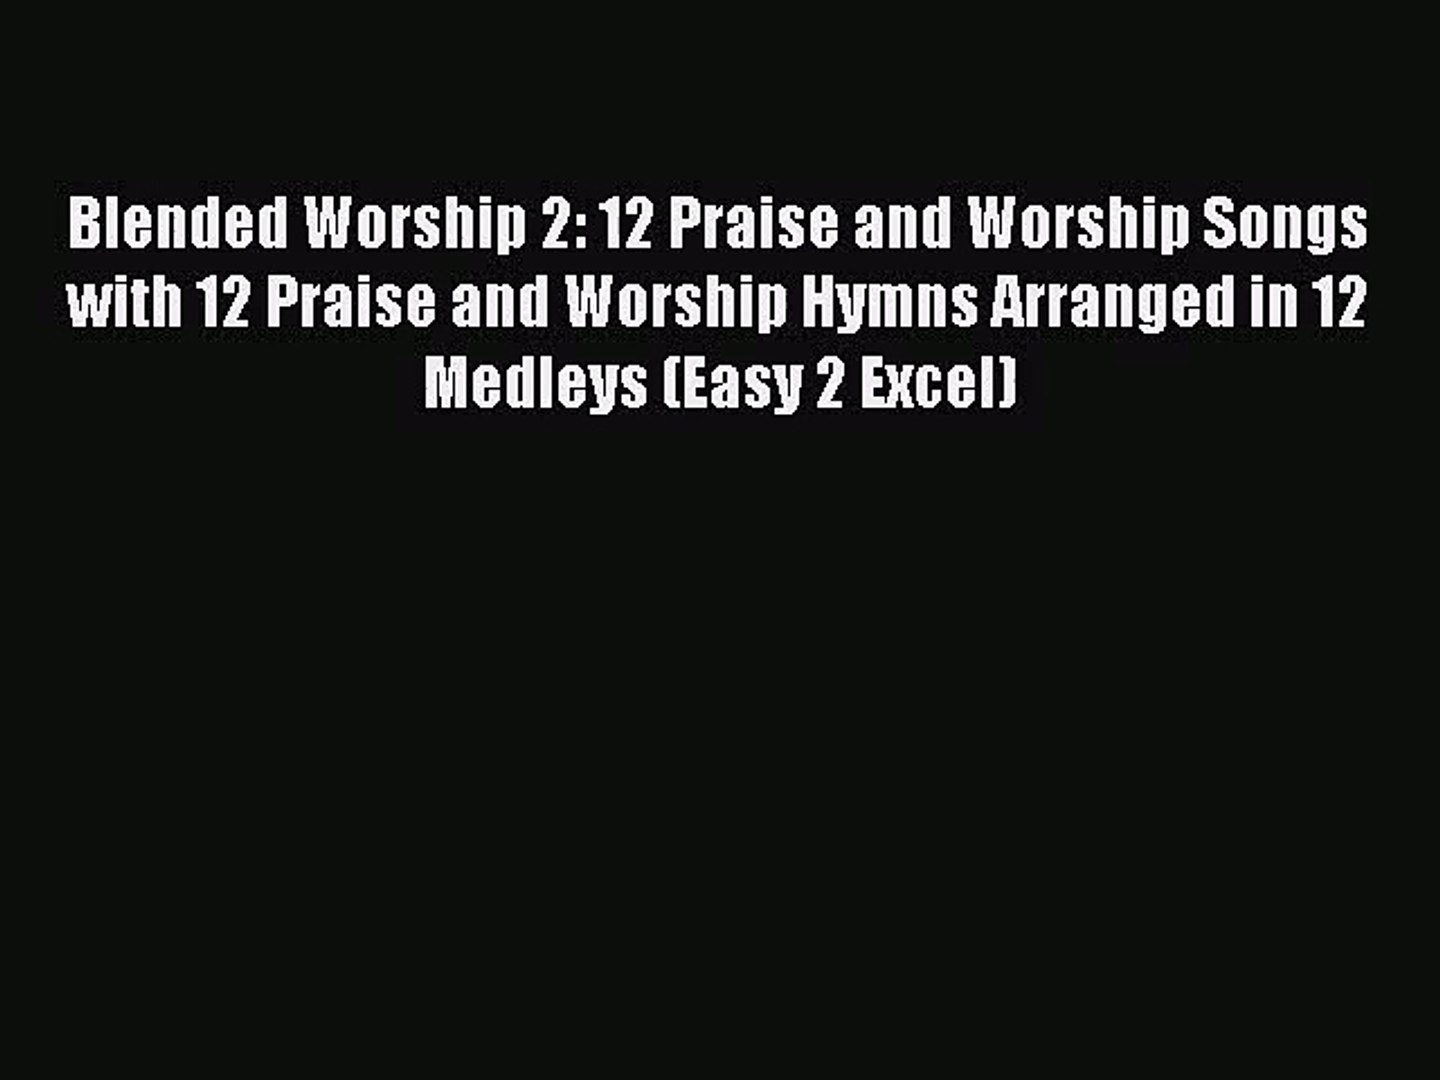 Read Blended Worship 2: 12 Praise and Worship Songs with 12 Praise and  Worship Hymns Arranged